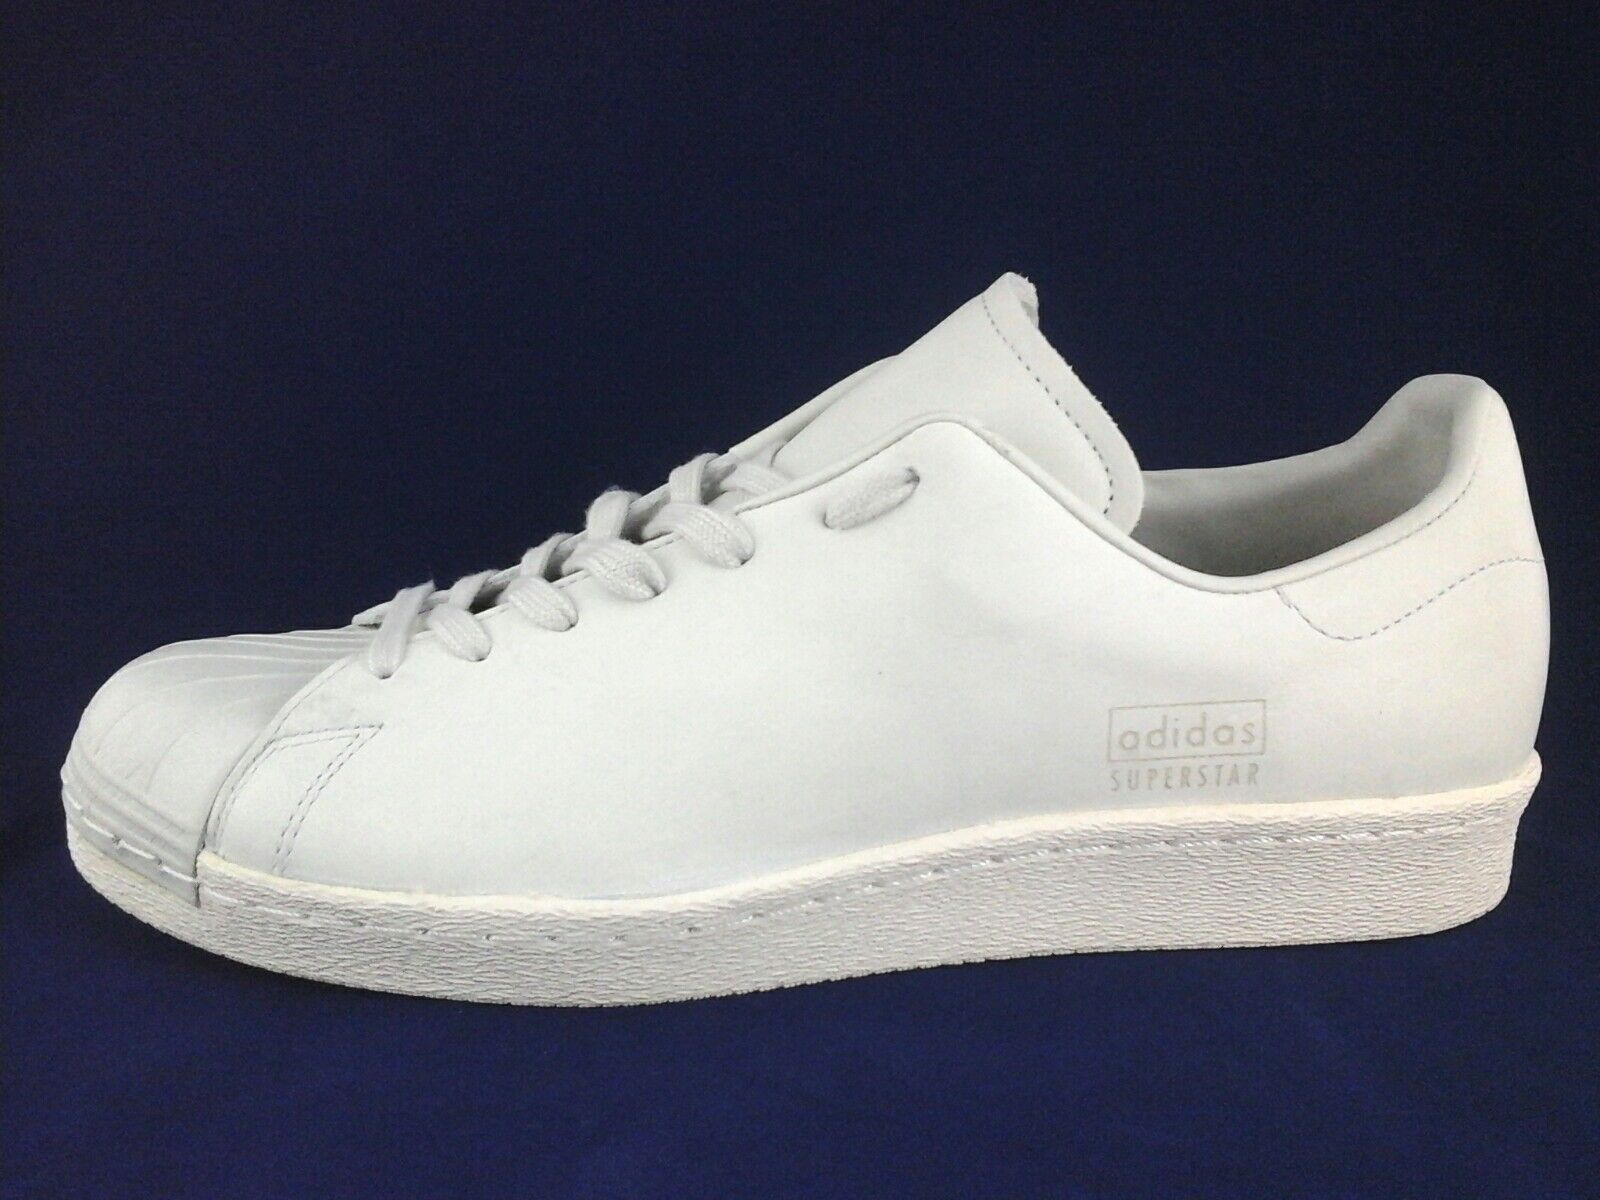 75cb2c4243481 ADIDAS SUPERSTAR Mens SHOES CLEAN HORWEEN Off White BB0169 US 10.5 EU 44  2 3